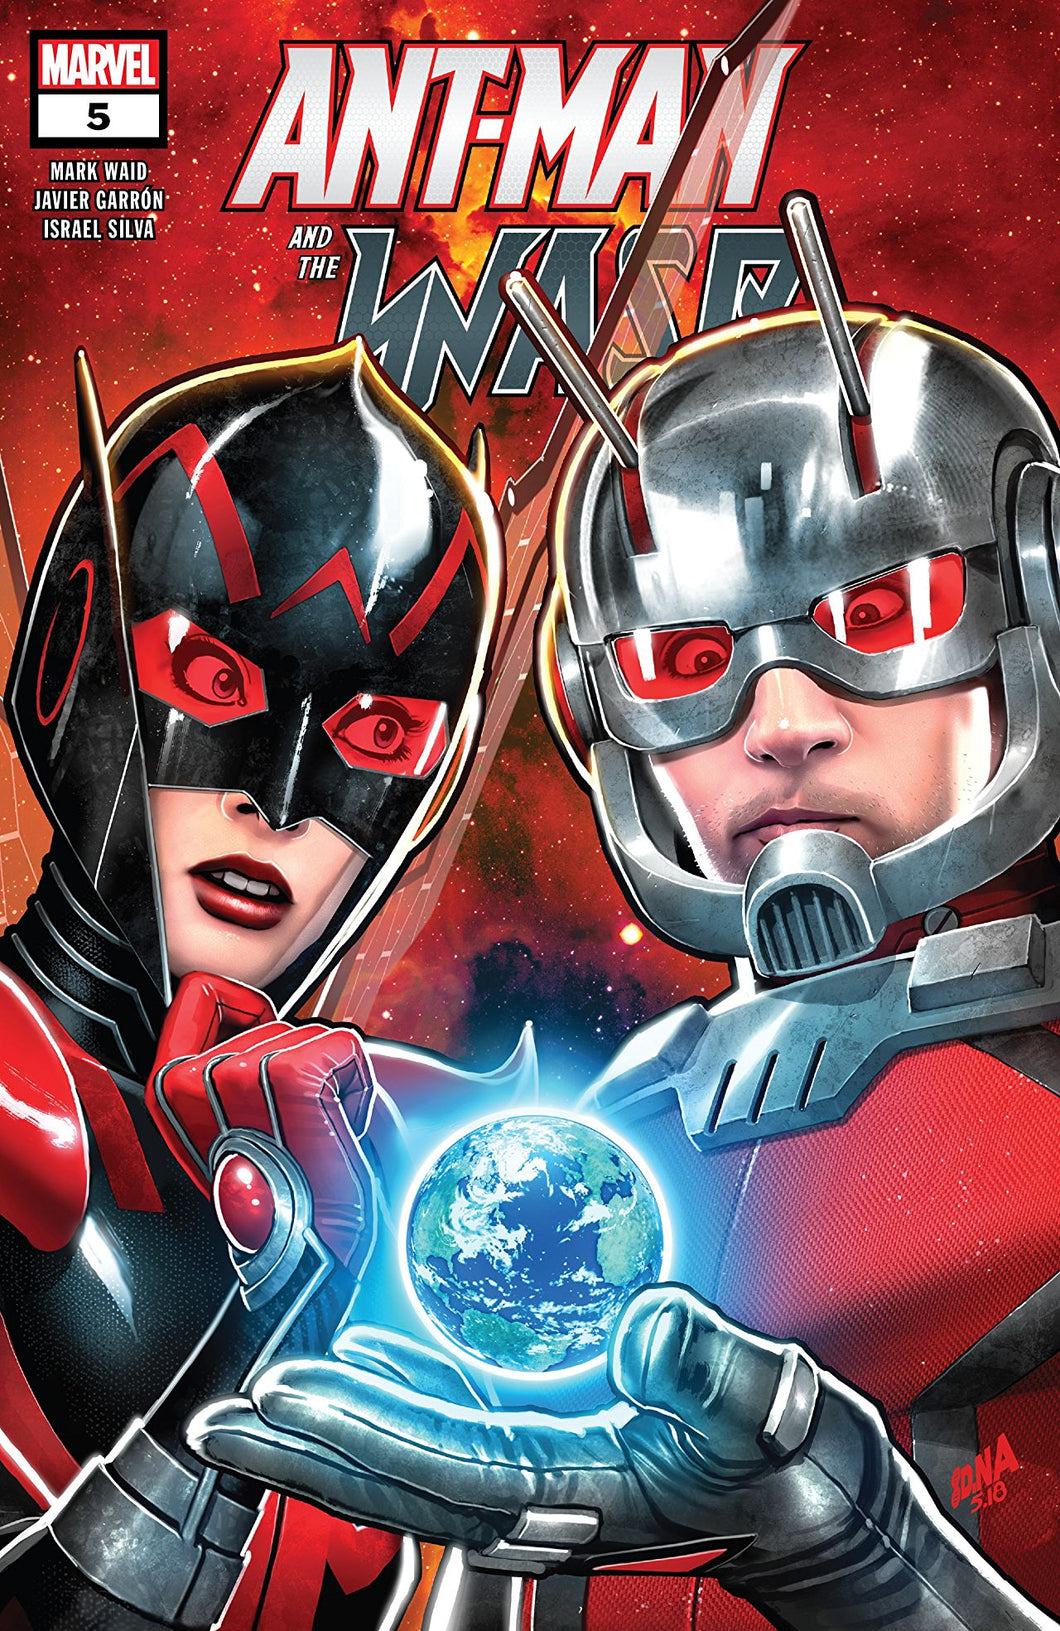 ANT-MAN AND THE WASP #5 (OF 5) (09/05/2018)